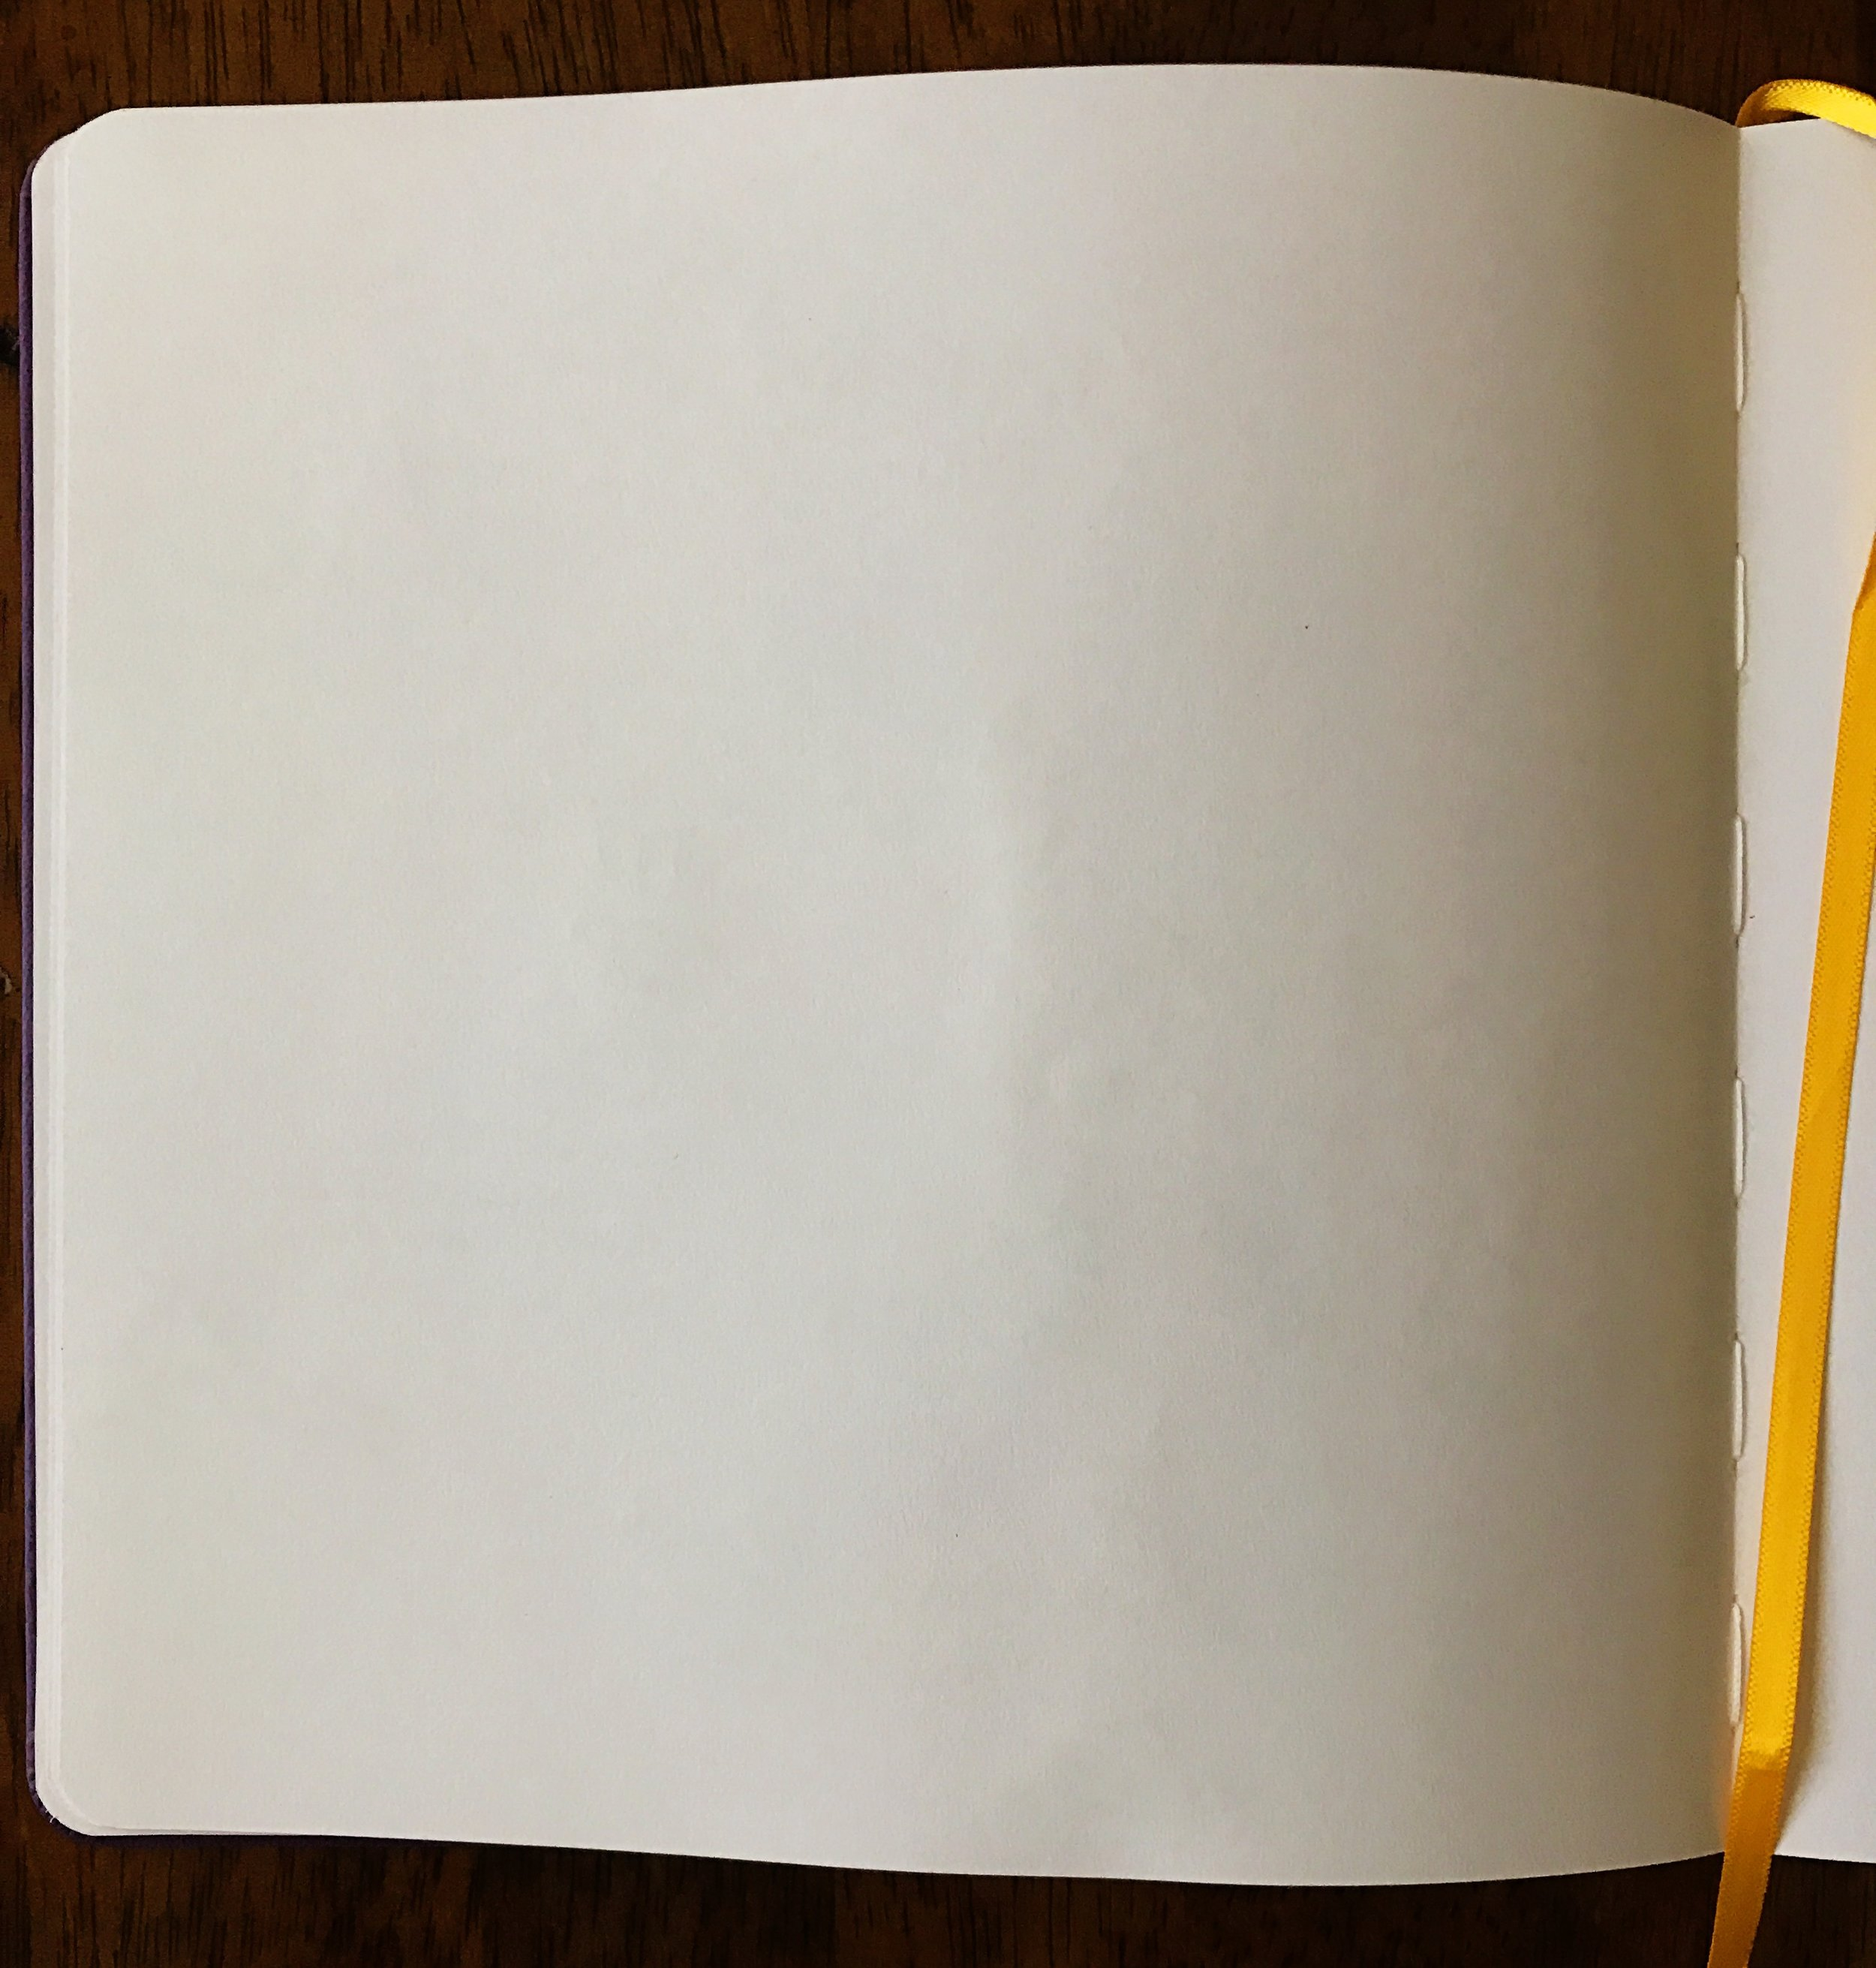 Back of the page above